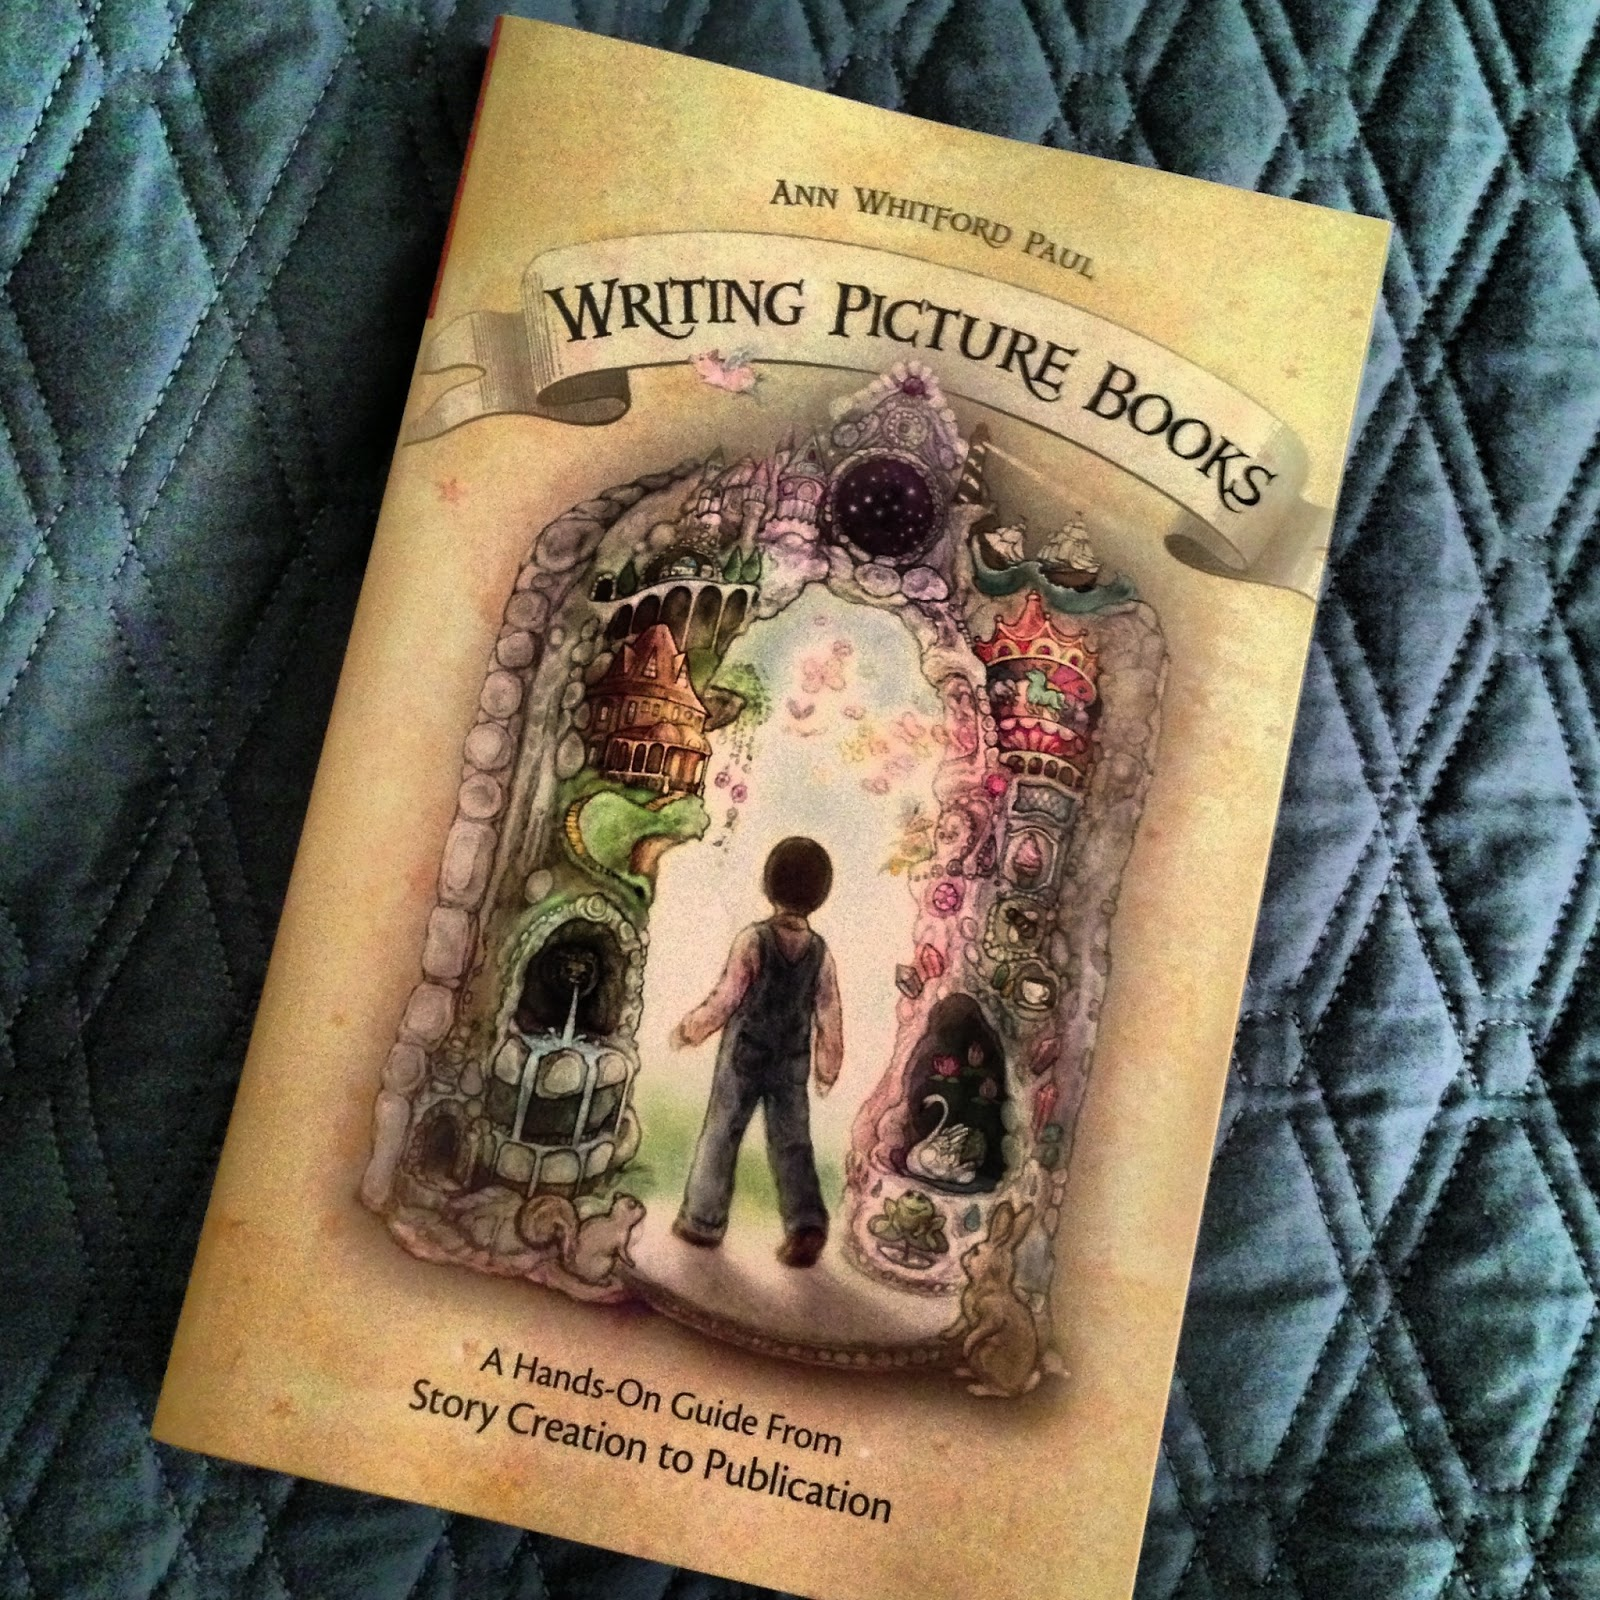 I'm currently halfway through reading it and it really is perfect for  helping me figure out the direction and format I would like for my stories.